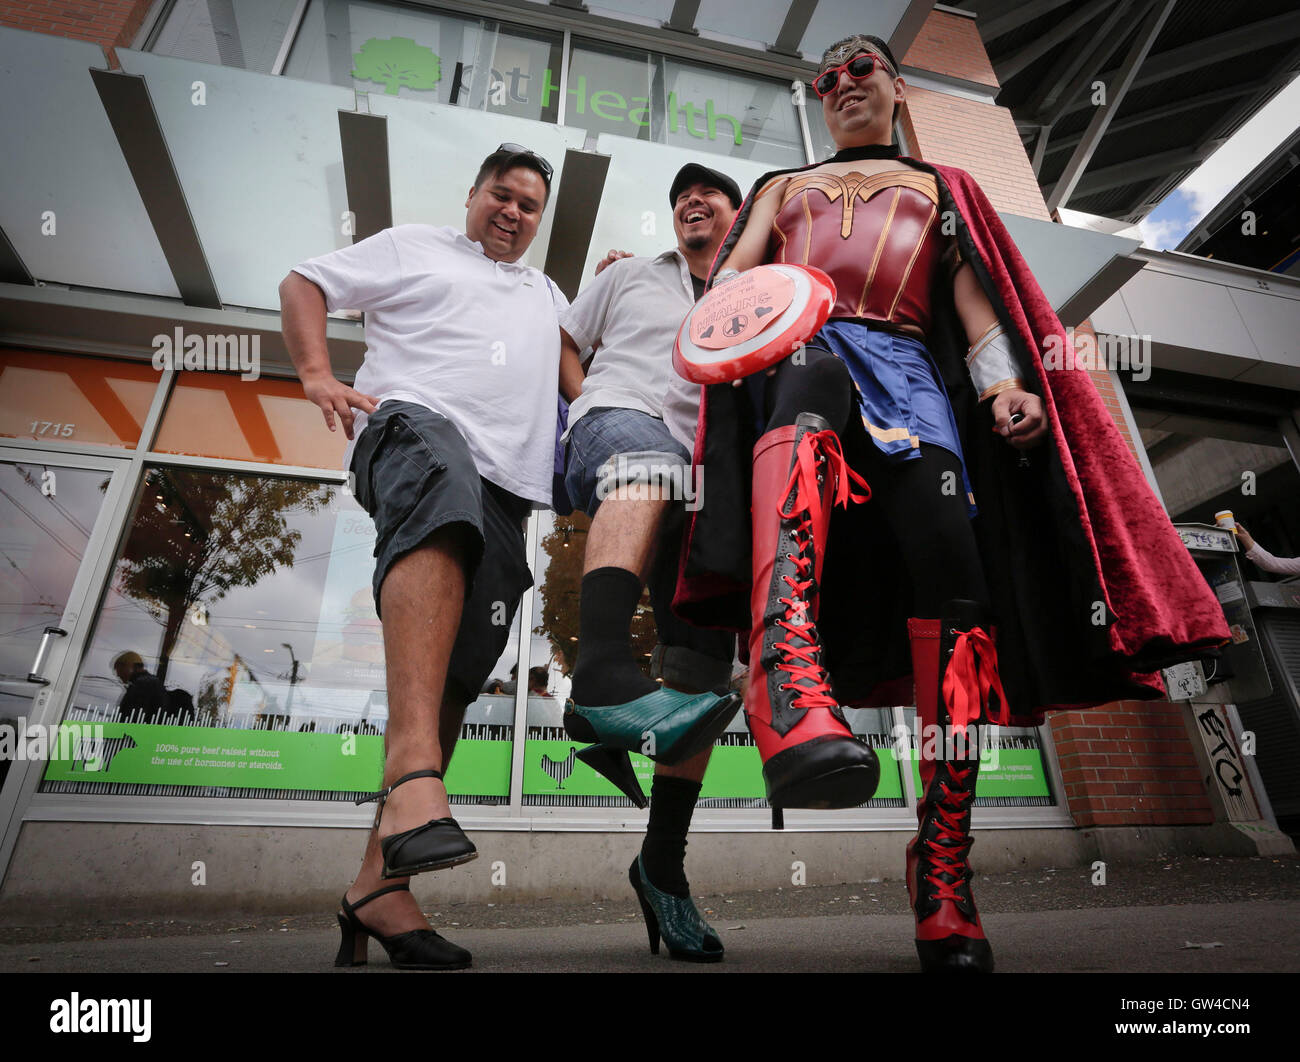 Vancouver, Canada. 10th Sep, 2016. Participants display their high heels during the 'Walk A Mile in Her Shoes' - Stock Image